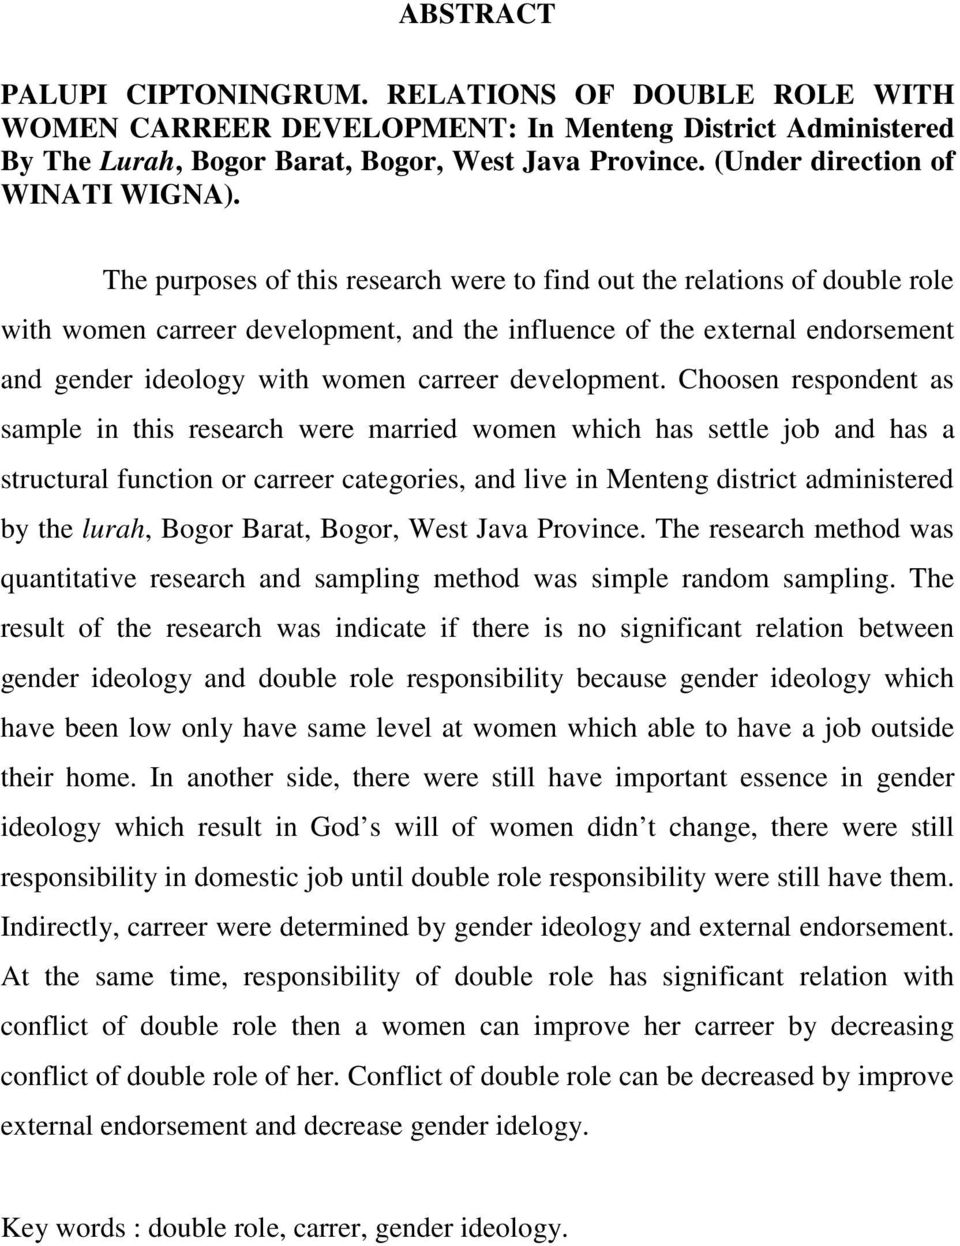 The purposes of this research were to find out the relations of double role with women carreer development, and the influence of the external endorsement and gender ideology with women carreer